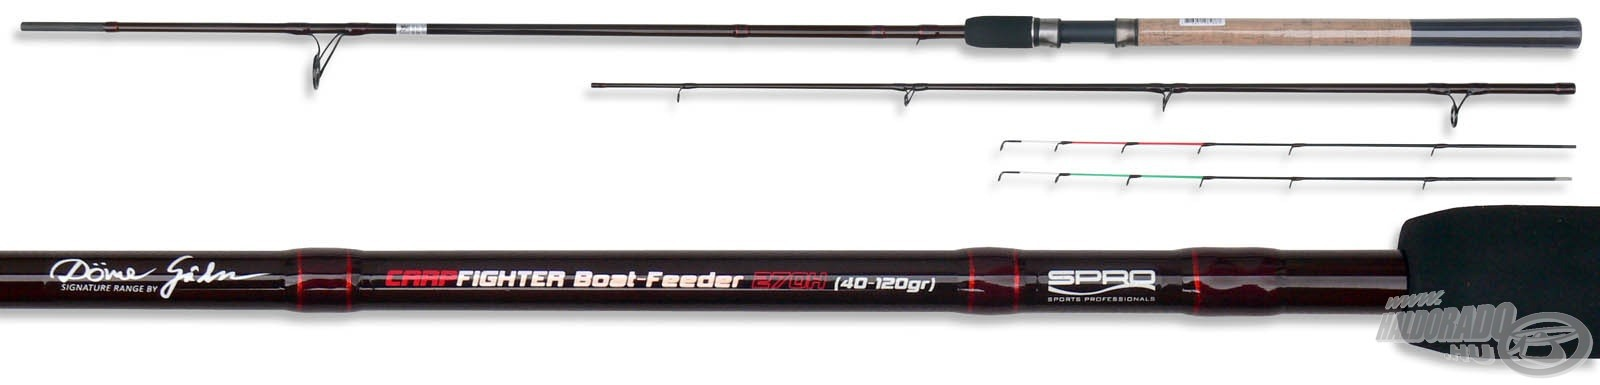 SPRO, Team Feeder Carp Fighter Boat 270XH - by D�me G�bor